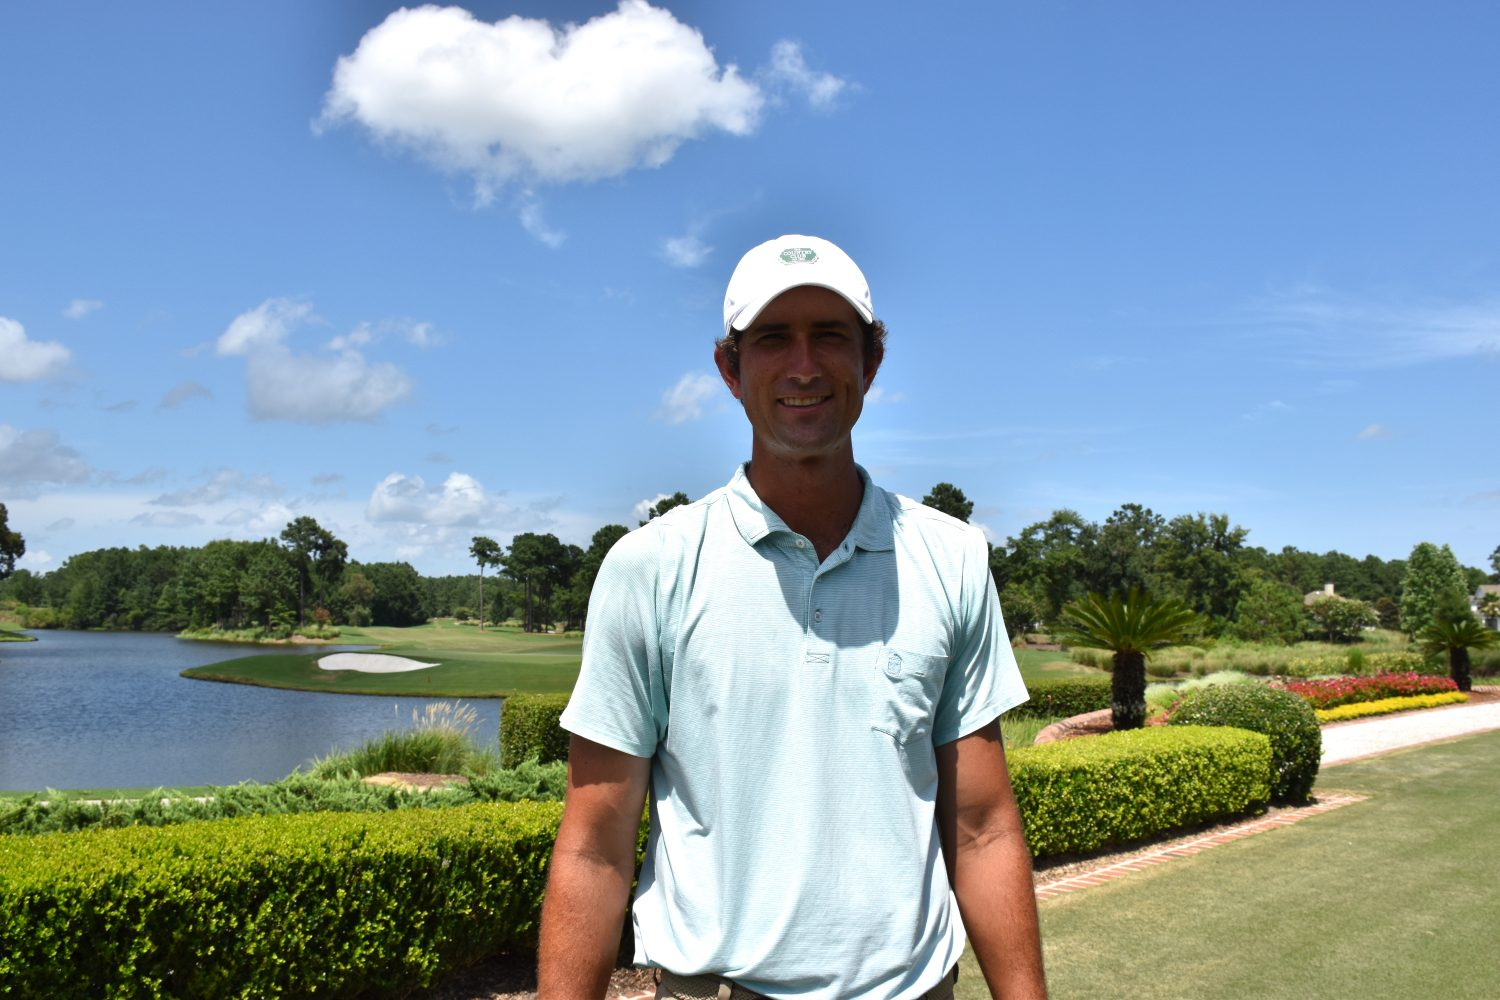 IJGA Alumni Stewart Hagestad Leads The Players Am Going Into the Final Round